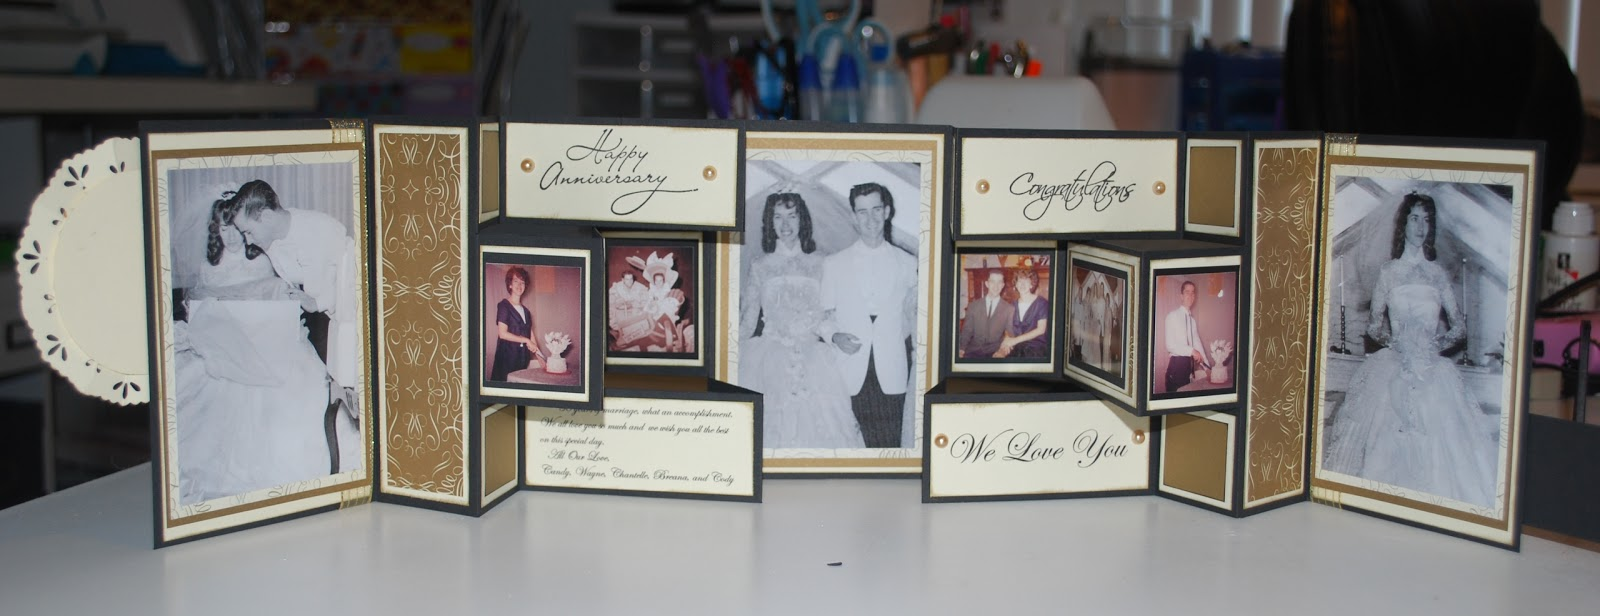 Scrapbooking Ideas, Scrapbooking And 50th Wedding